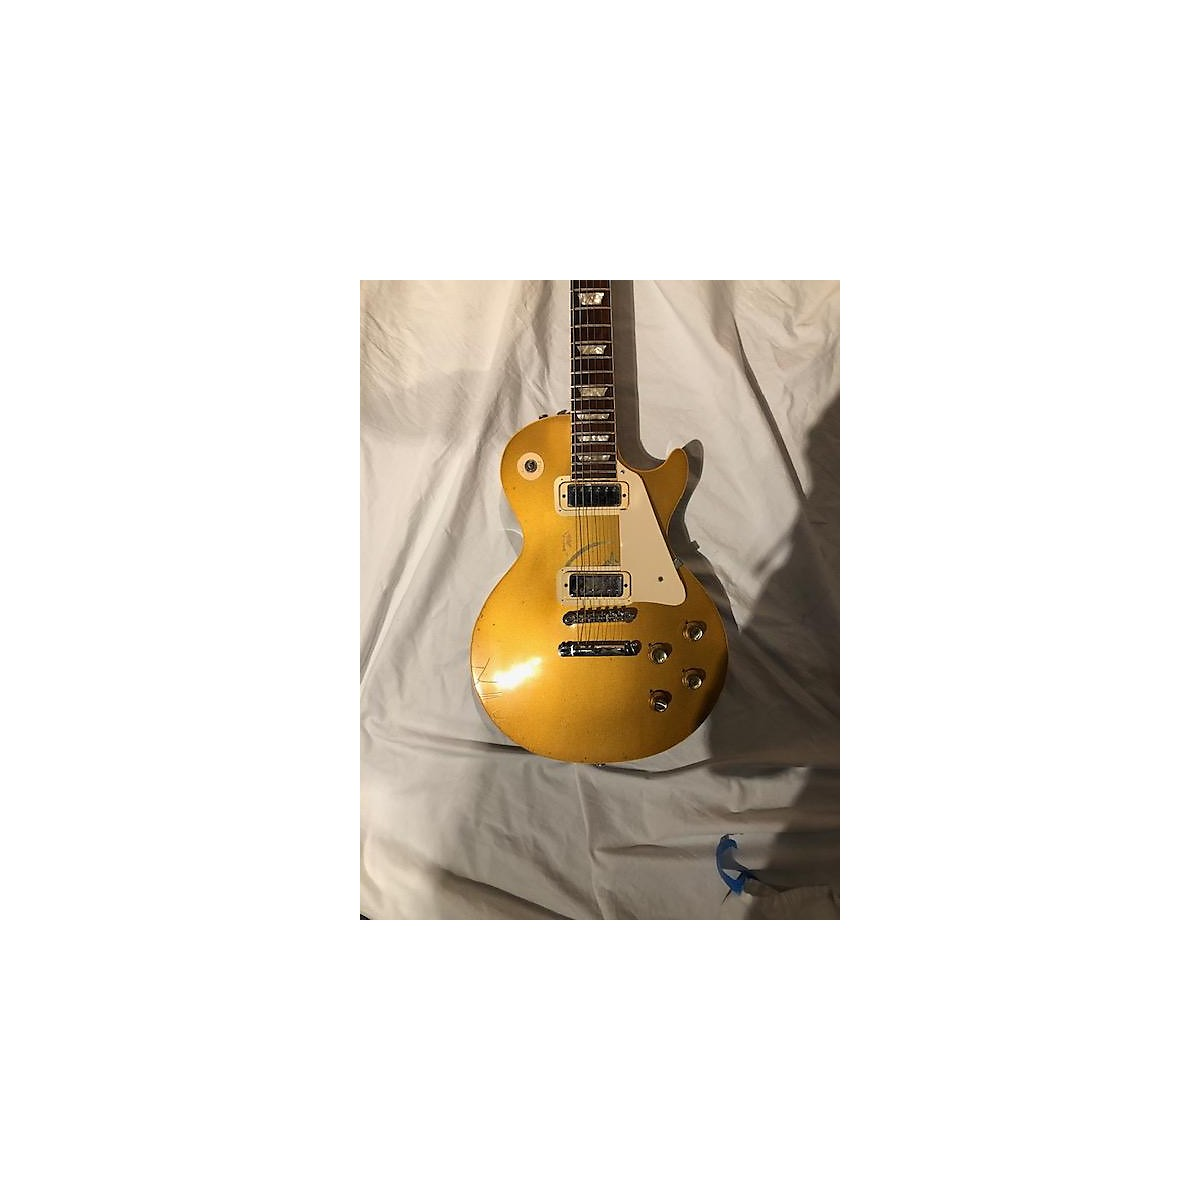 Gibson 1971 Les Paul Deluxe Solid Body Electric Guitar